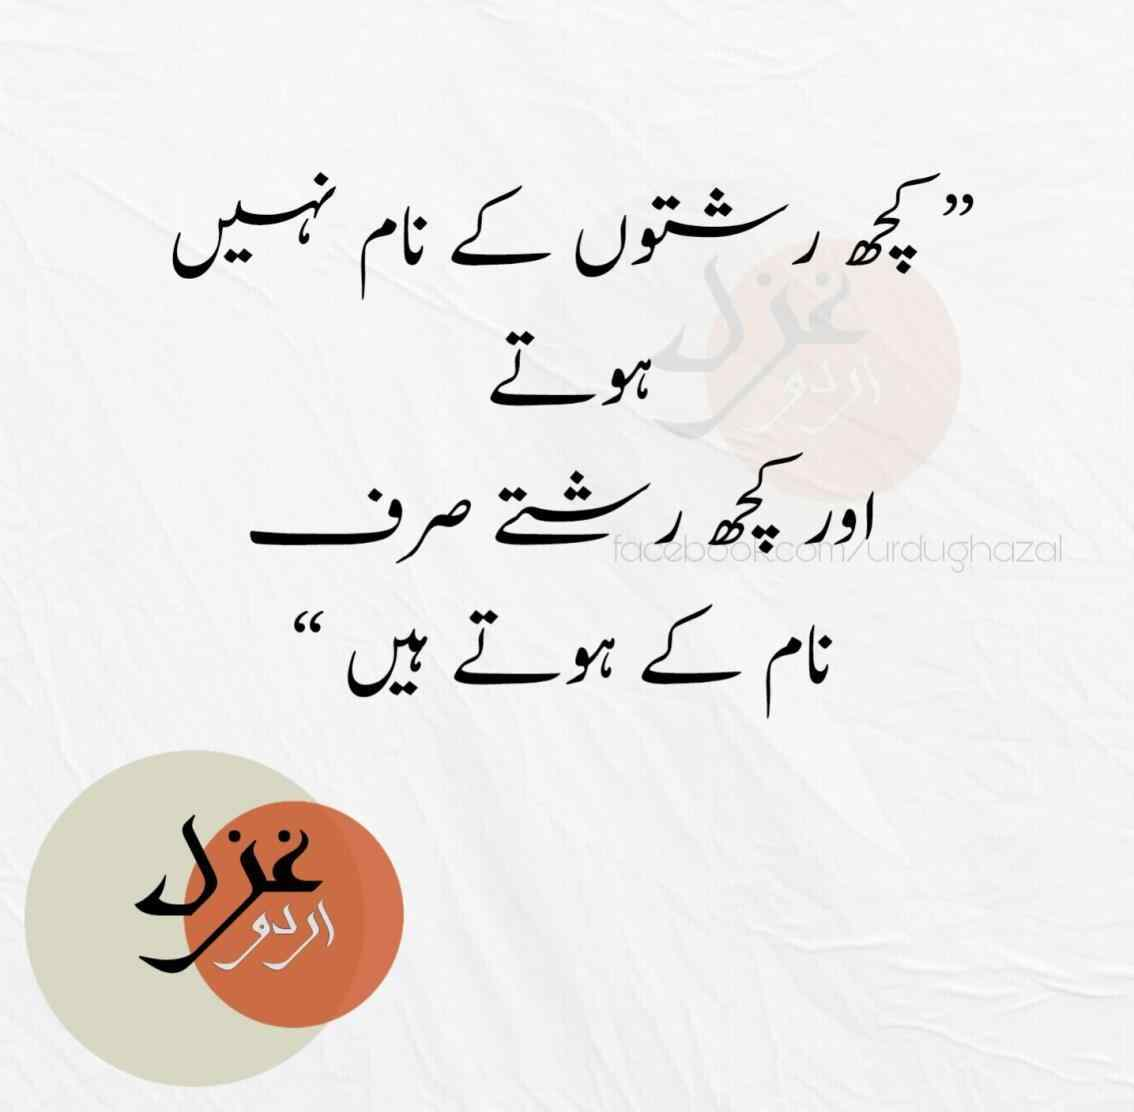 Funny Love President Readerus Digest Funny Funny Quotes About Friends In Urdu President Quotes Readerus Digest Saaadddiii Pinterest Hazrat Ali Islam And